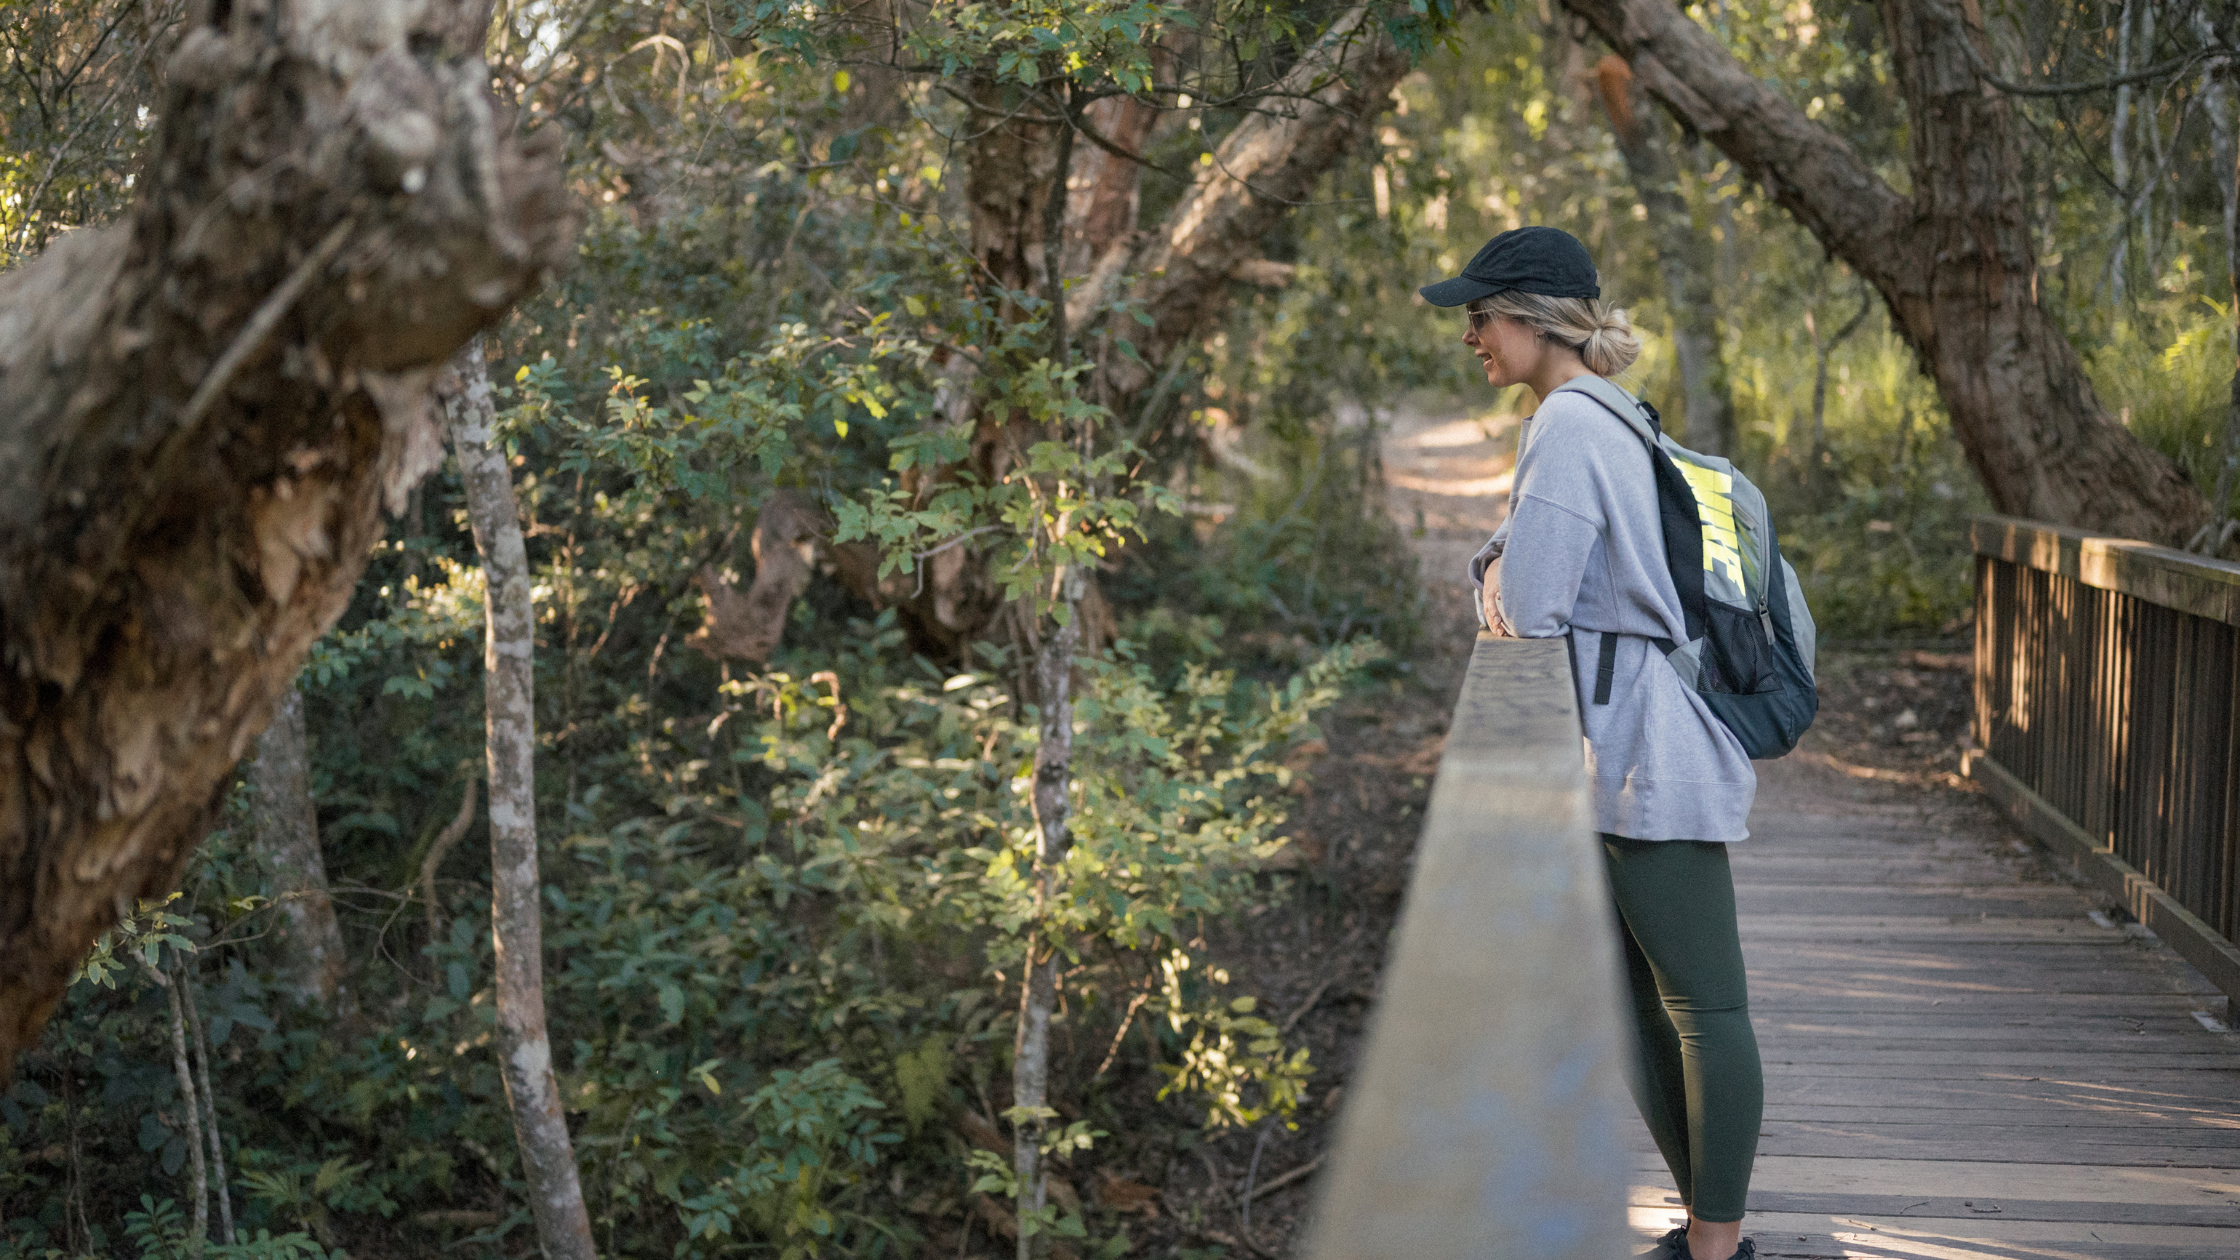 Image of a woman at Dooragan National Park in the NSW Greater Port Macquarie region